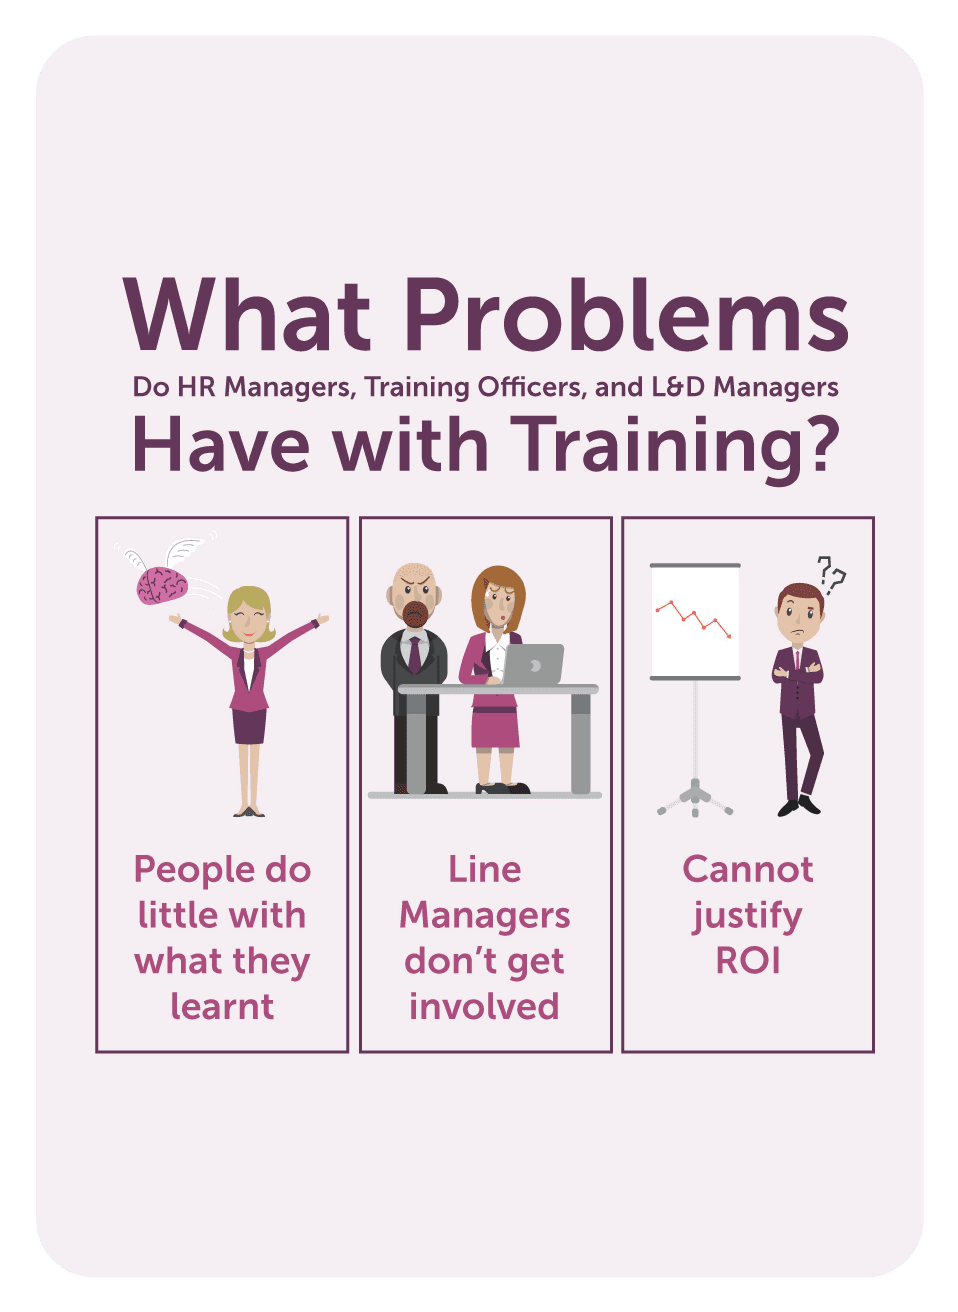 Category management coaching card titled What problems with training?